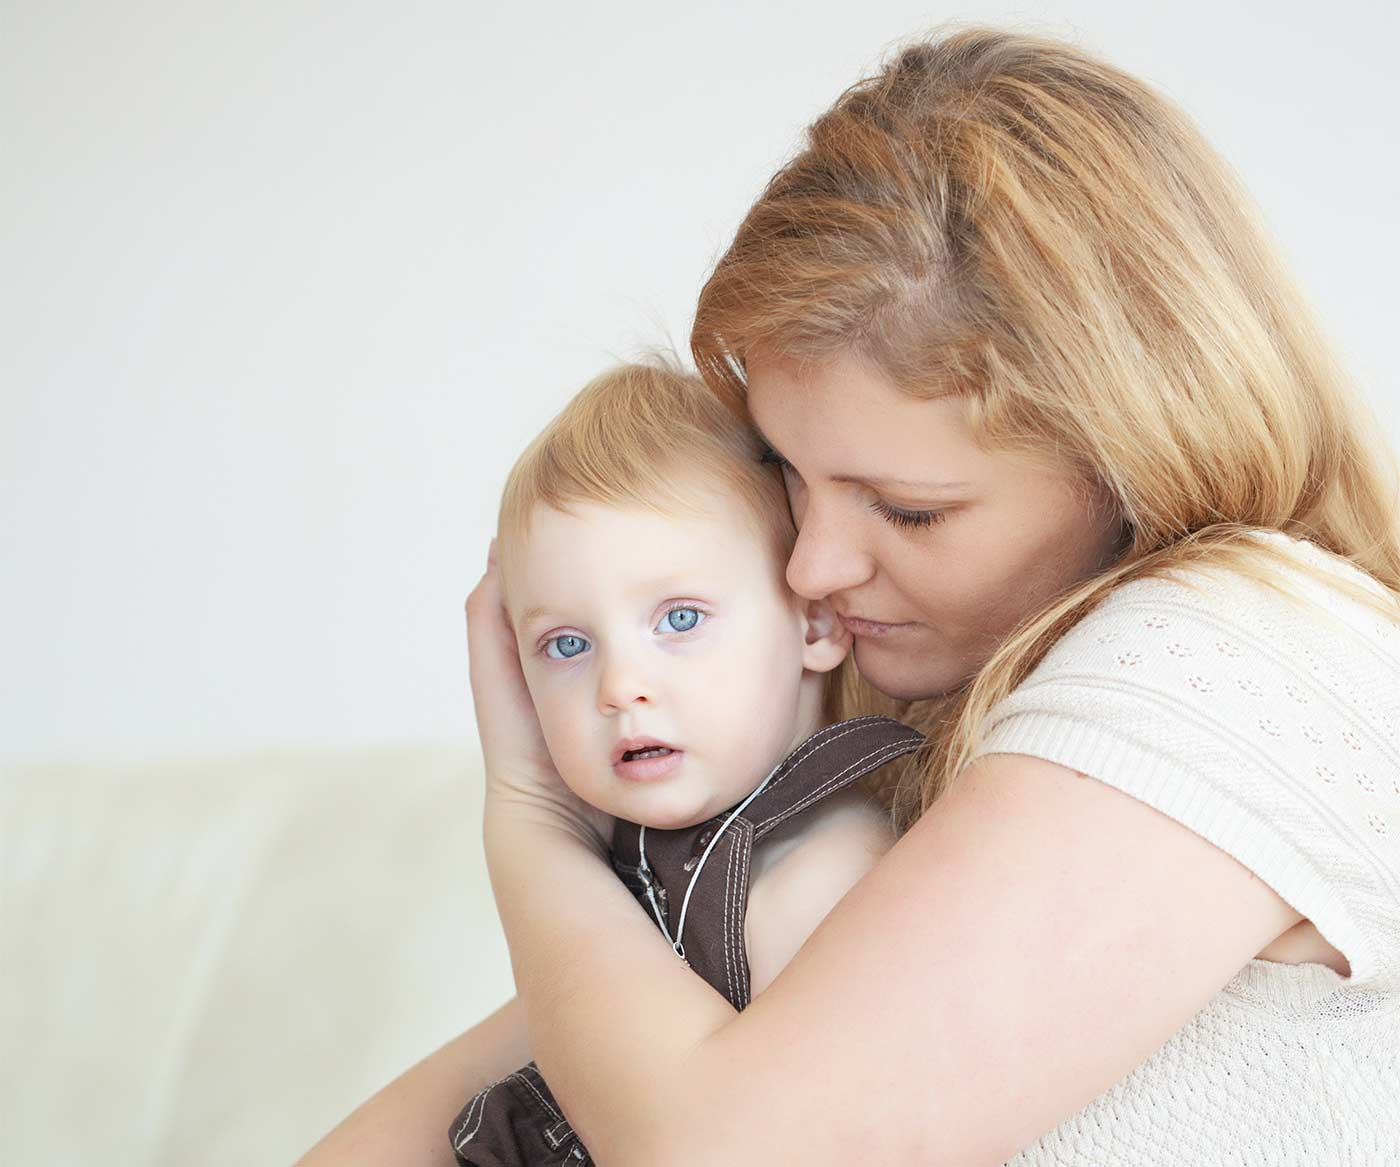 How to talk to your child about challenging emotions